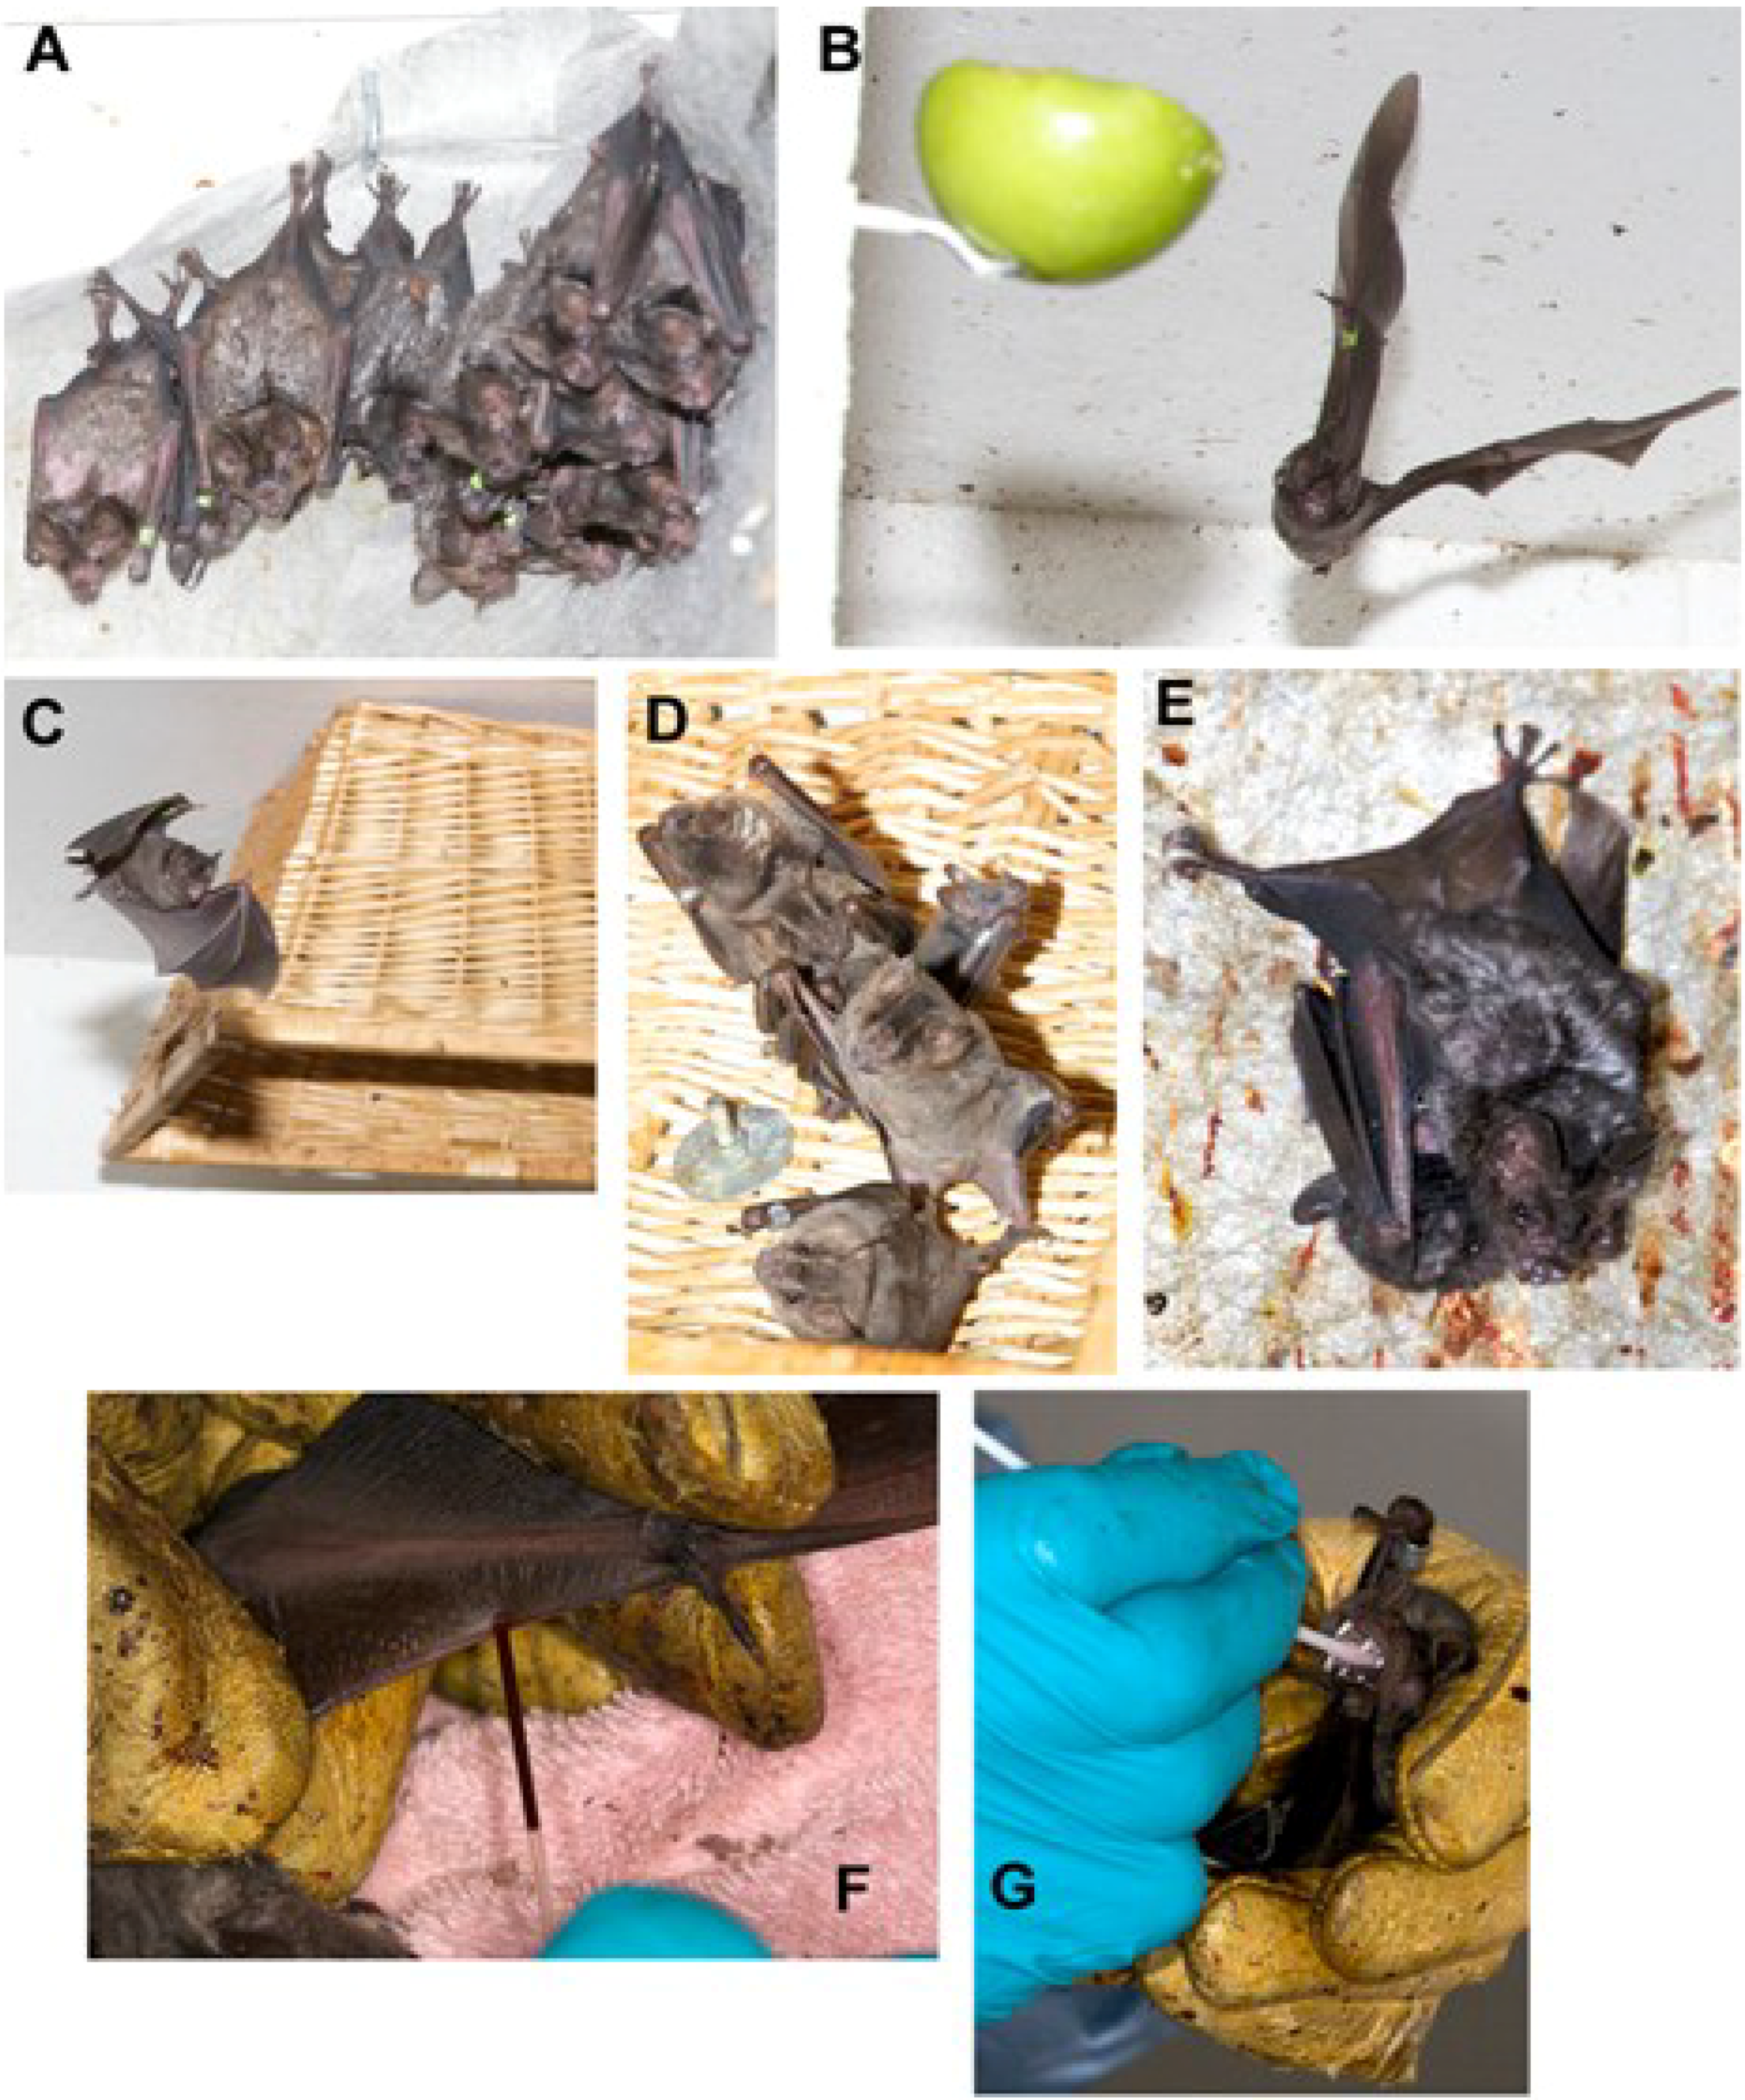 Viruses | Free Full-Text | Immunology of Bats and Their Viruses